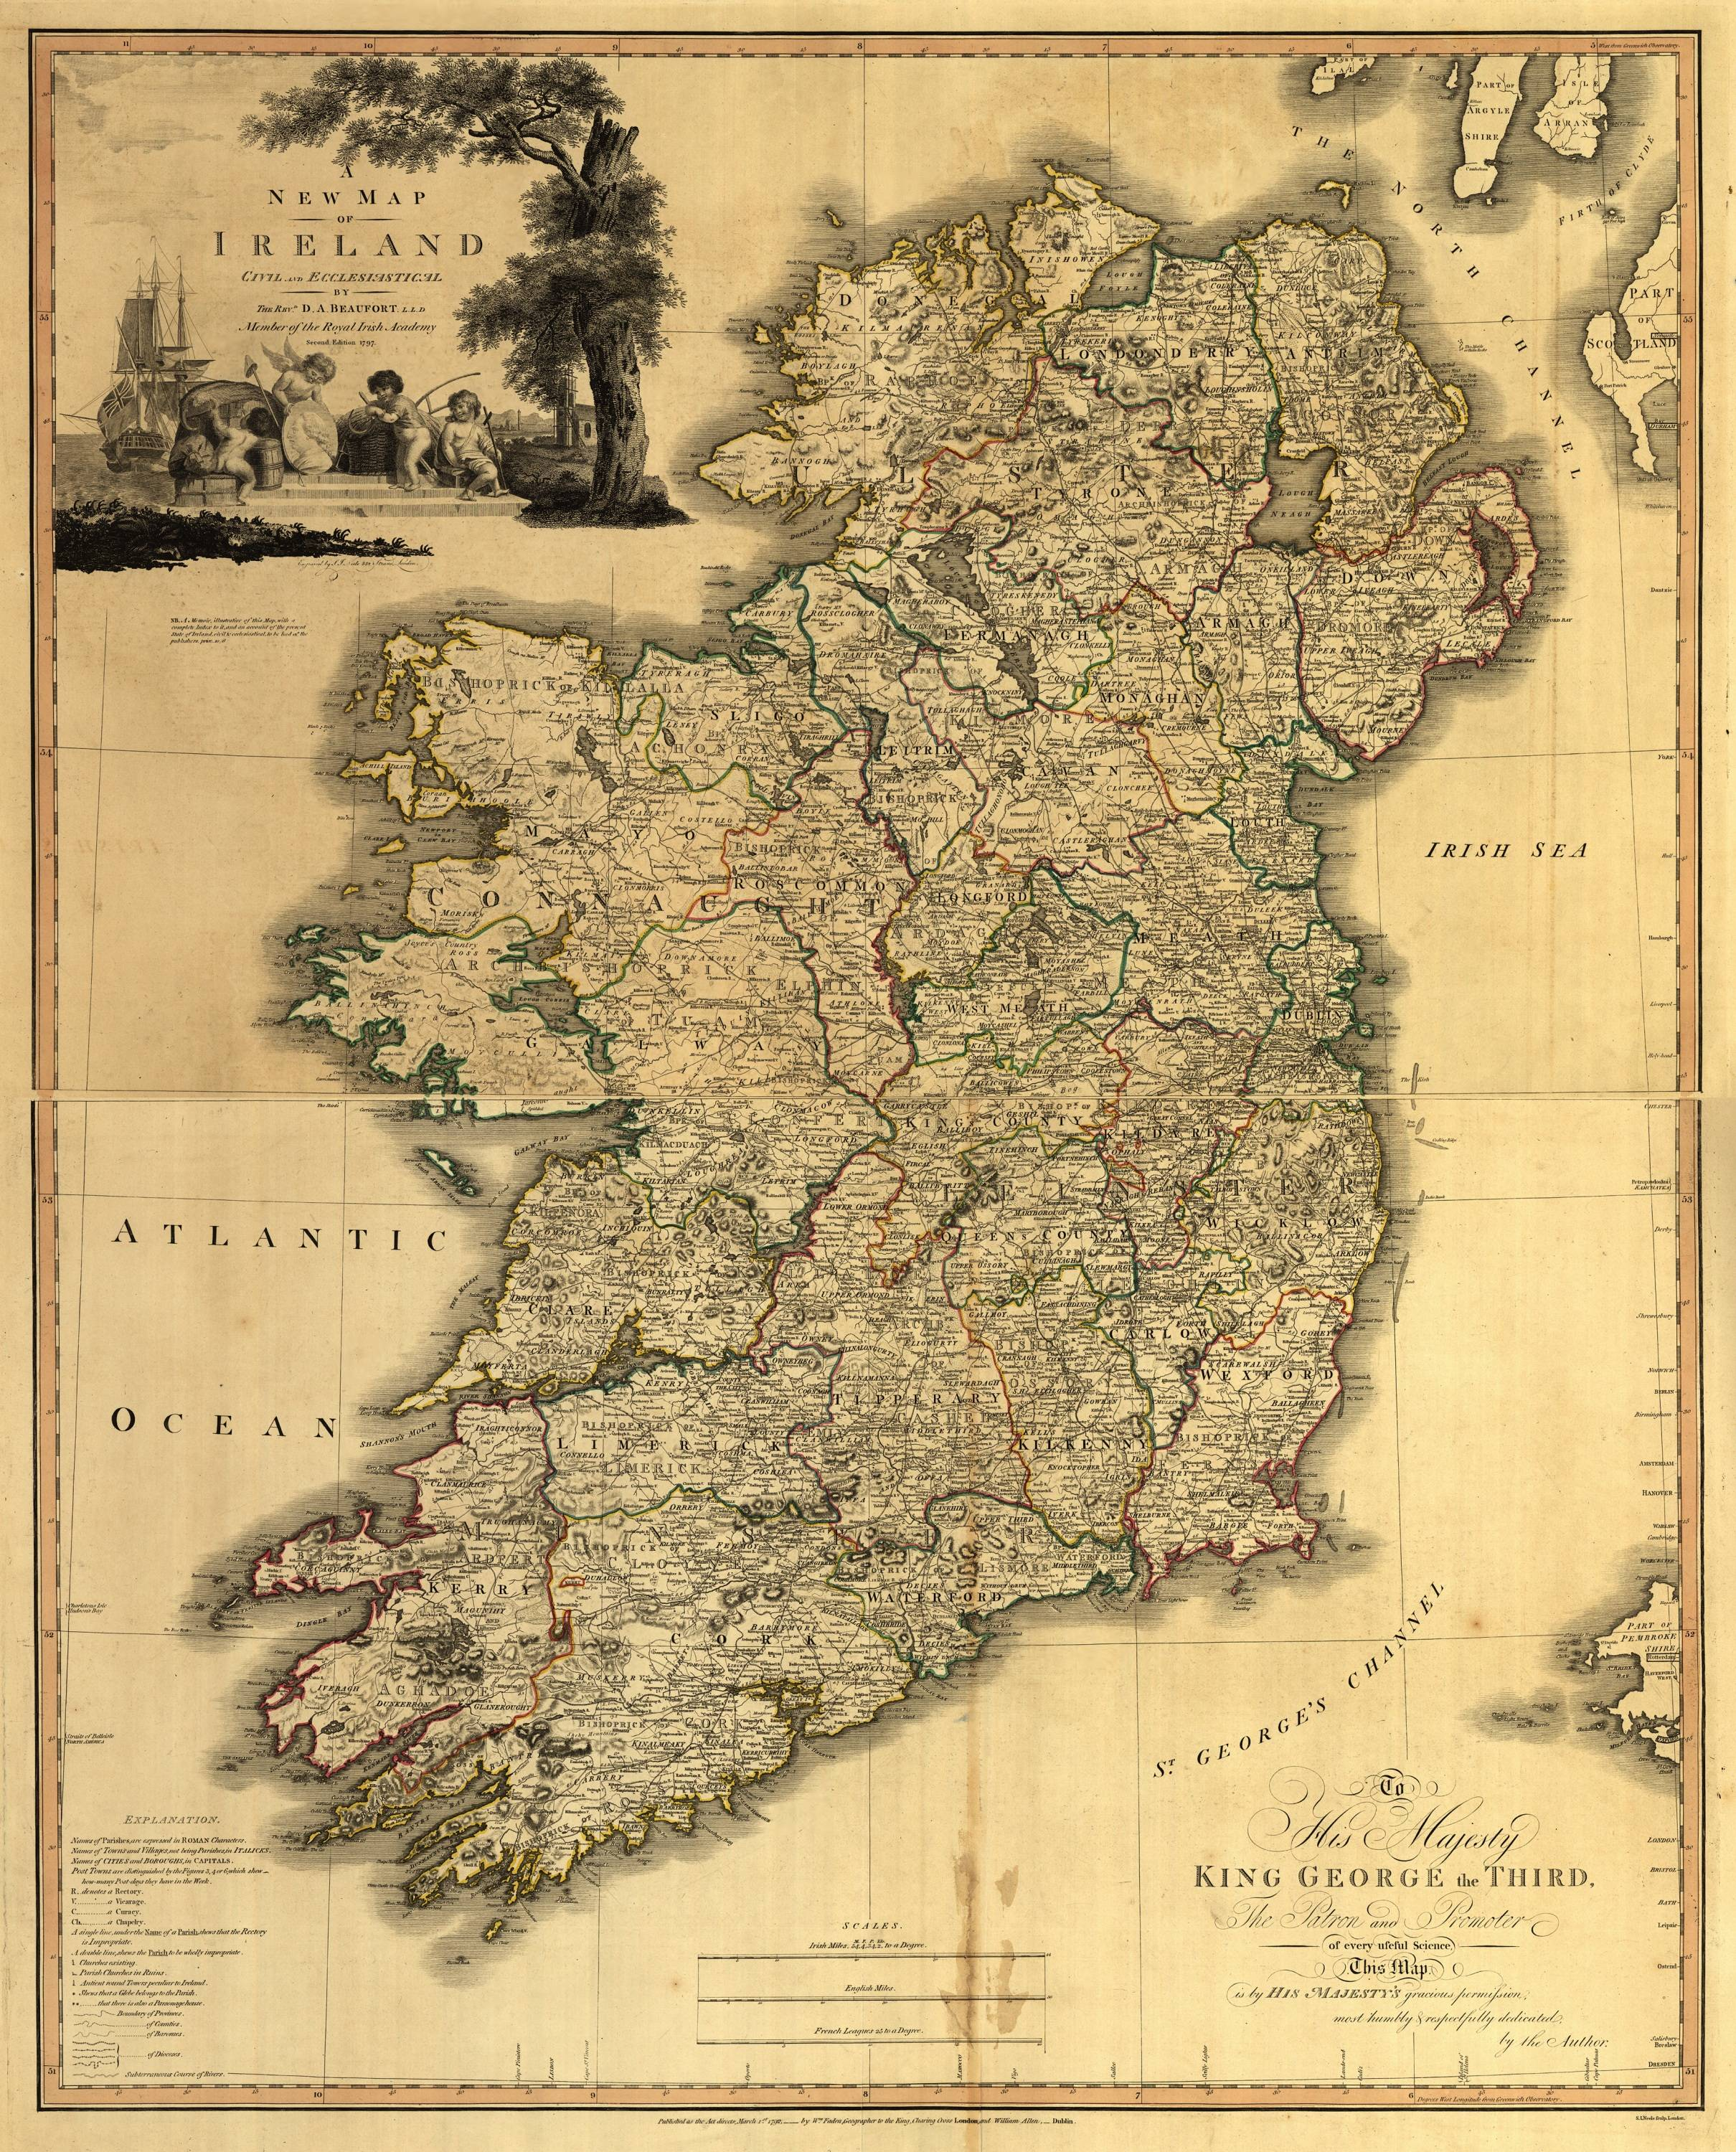 Map Of Ireland Jpg.File A New Map Of Ireland Civil And Ecclesiastical Jpg Wikipedia